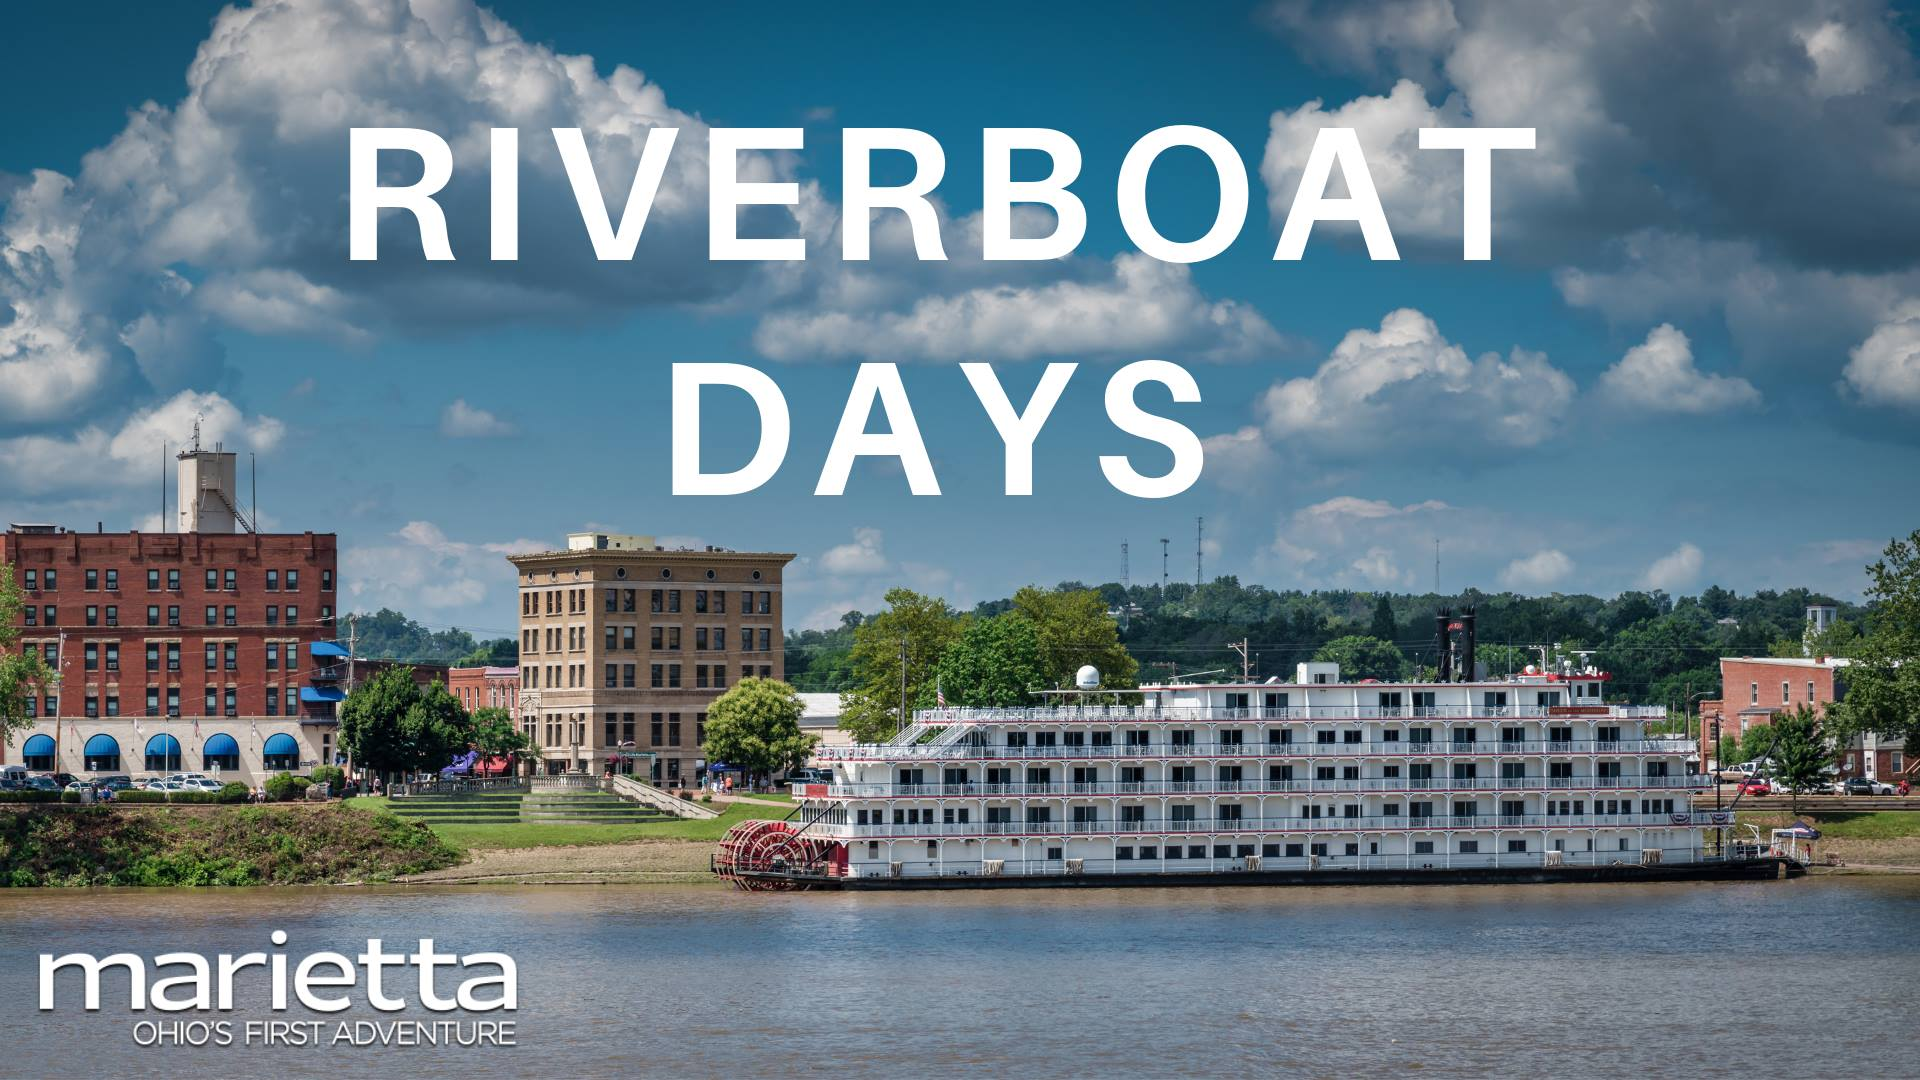 Riverboat Days: Queen of the Mississippi